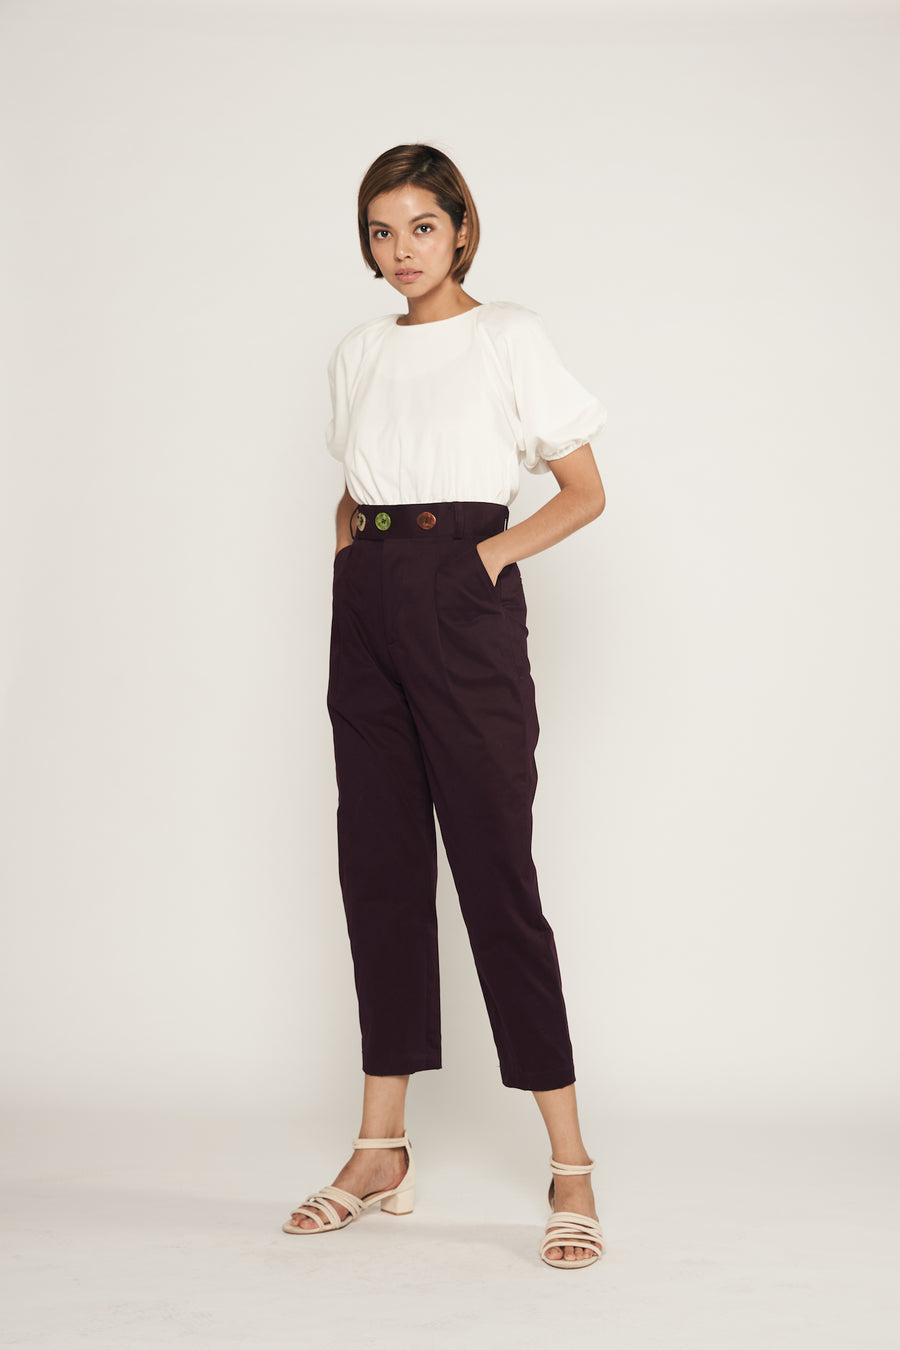 Statement Triple Button Pegged Trousers  | Maroon